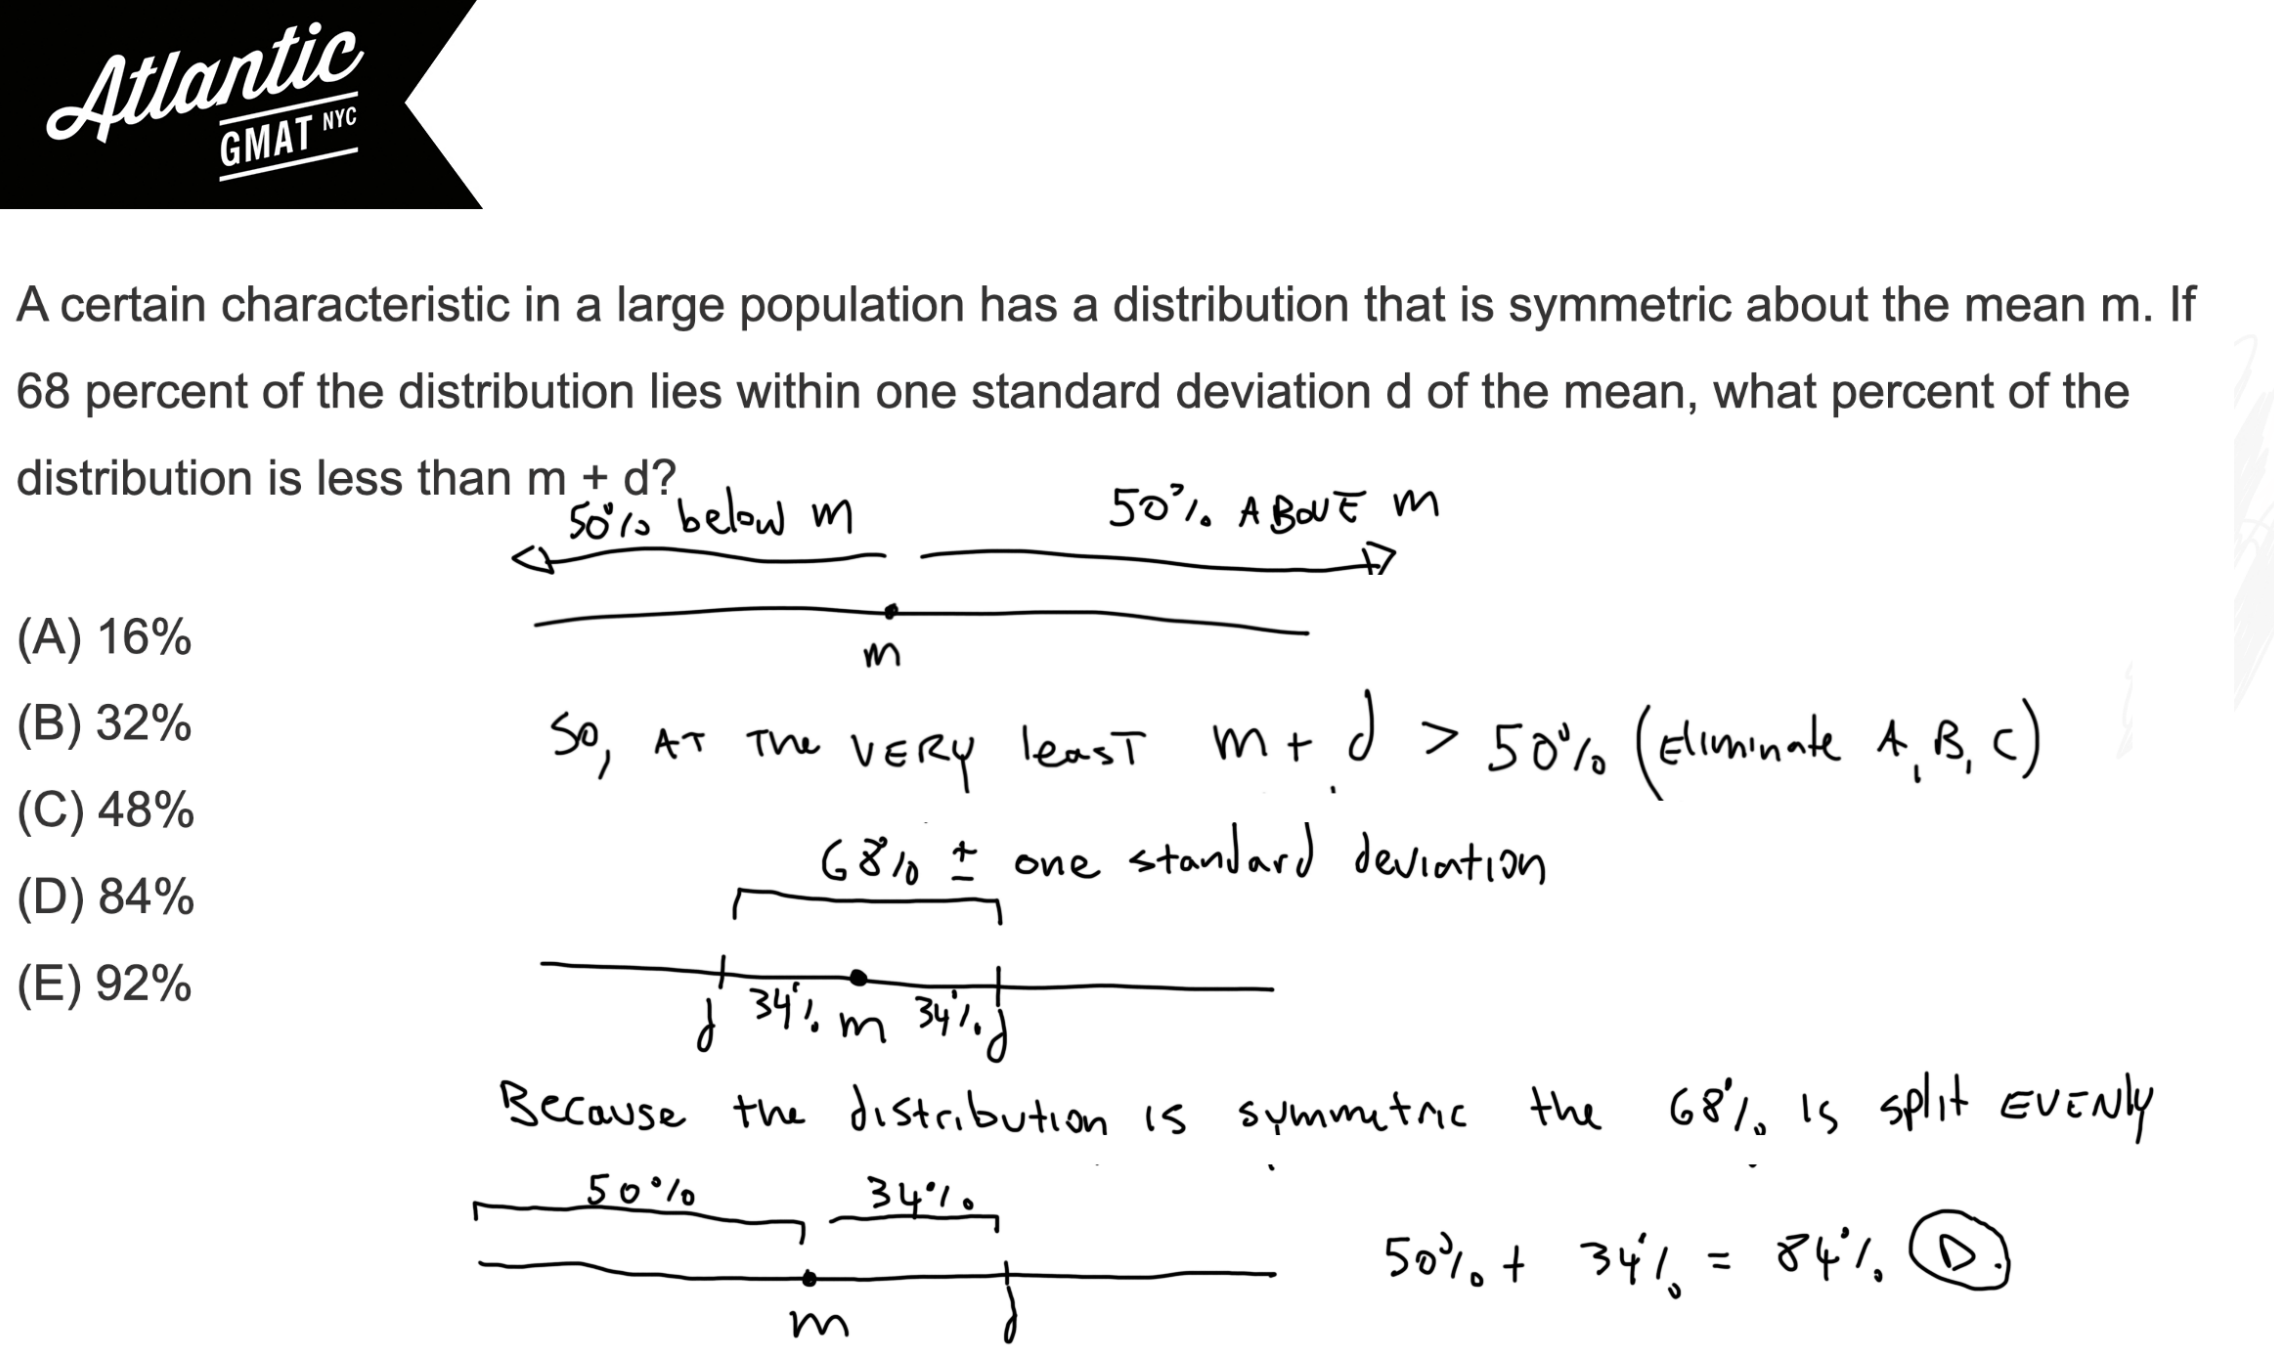 A certain characteristic in a large population has a distribution that is symmetric about the mean m GMAT Explanation Diagram